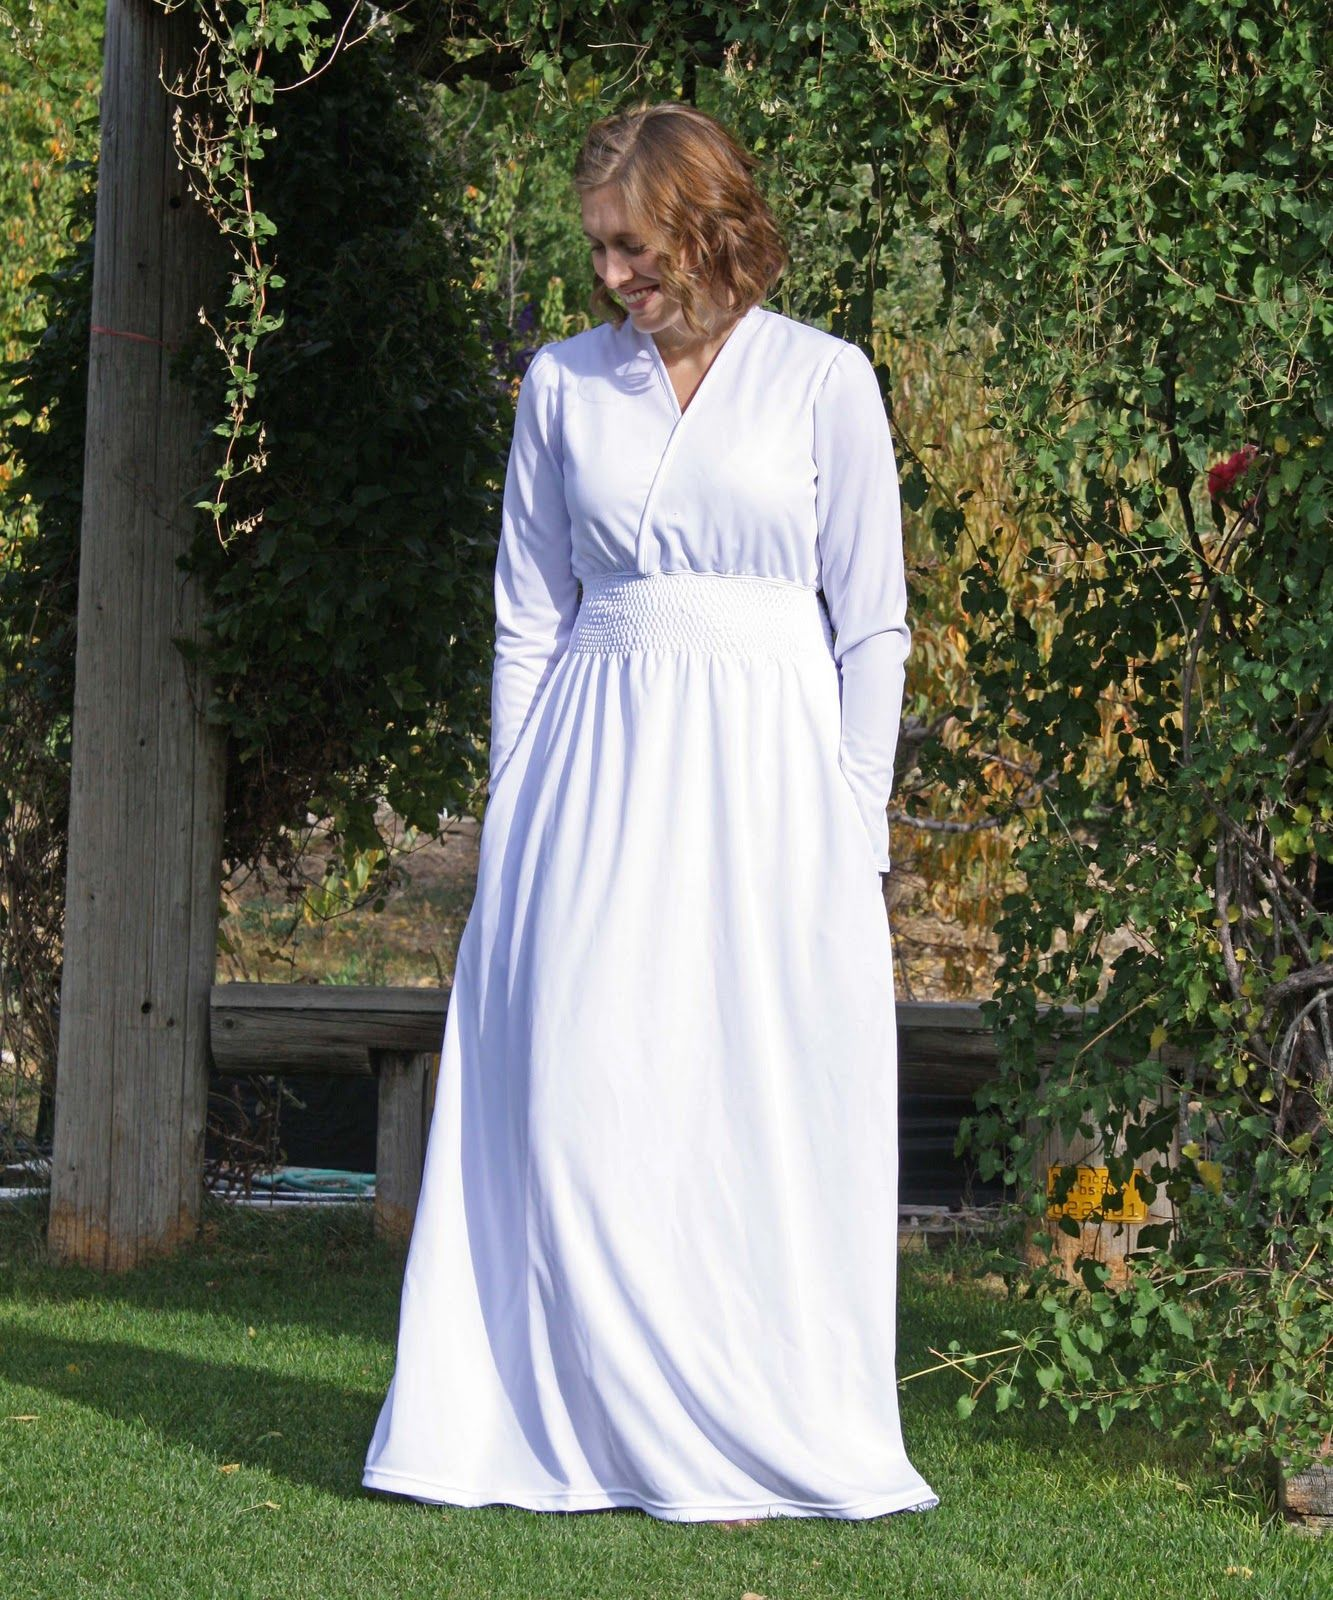 Another diy maxi dress from one of my favorite sewing blogs running with scissors maxi dress variation making long sleeves would prefer length sleeves jeuxipadfo Images